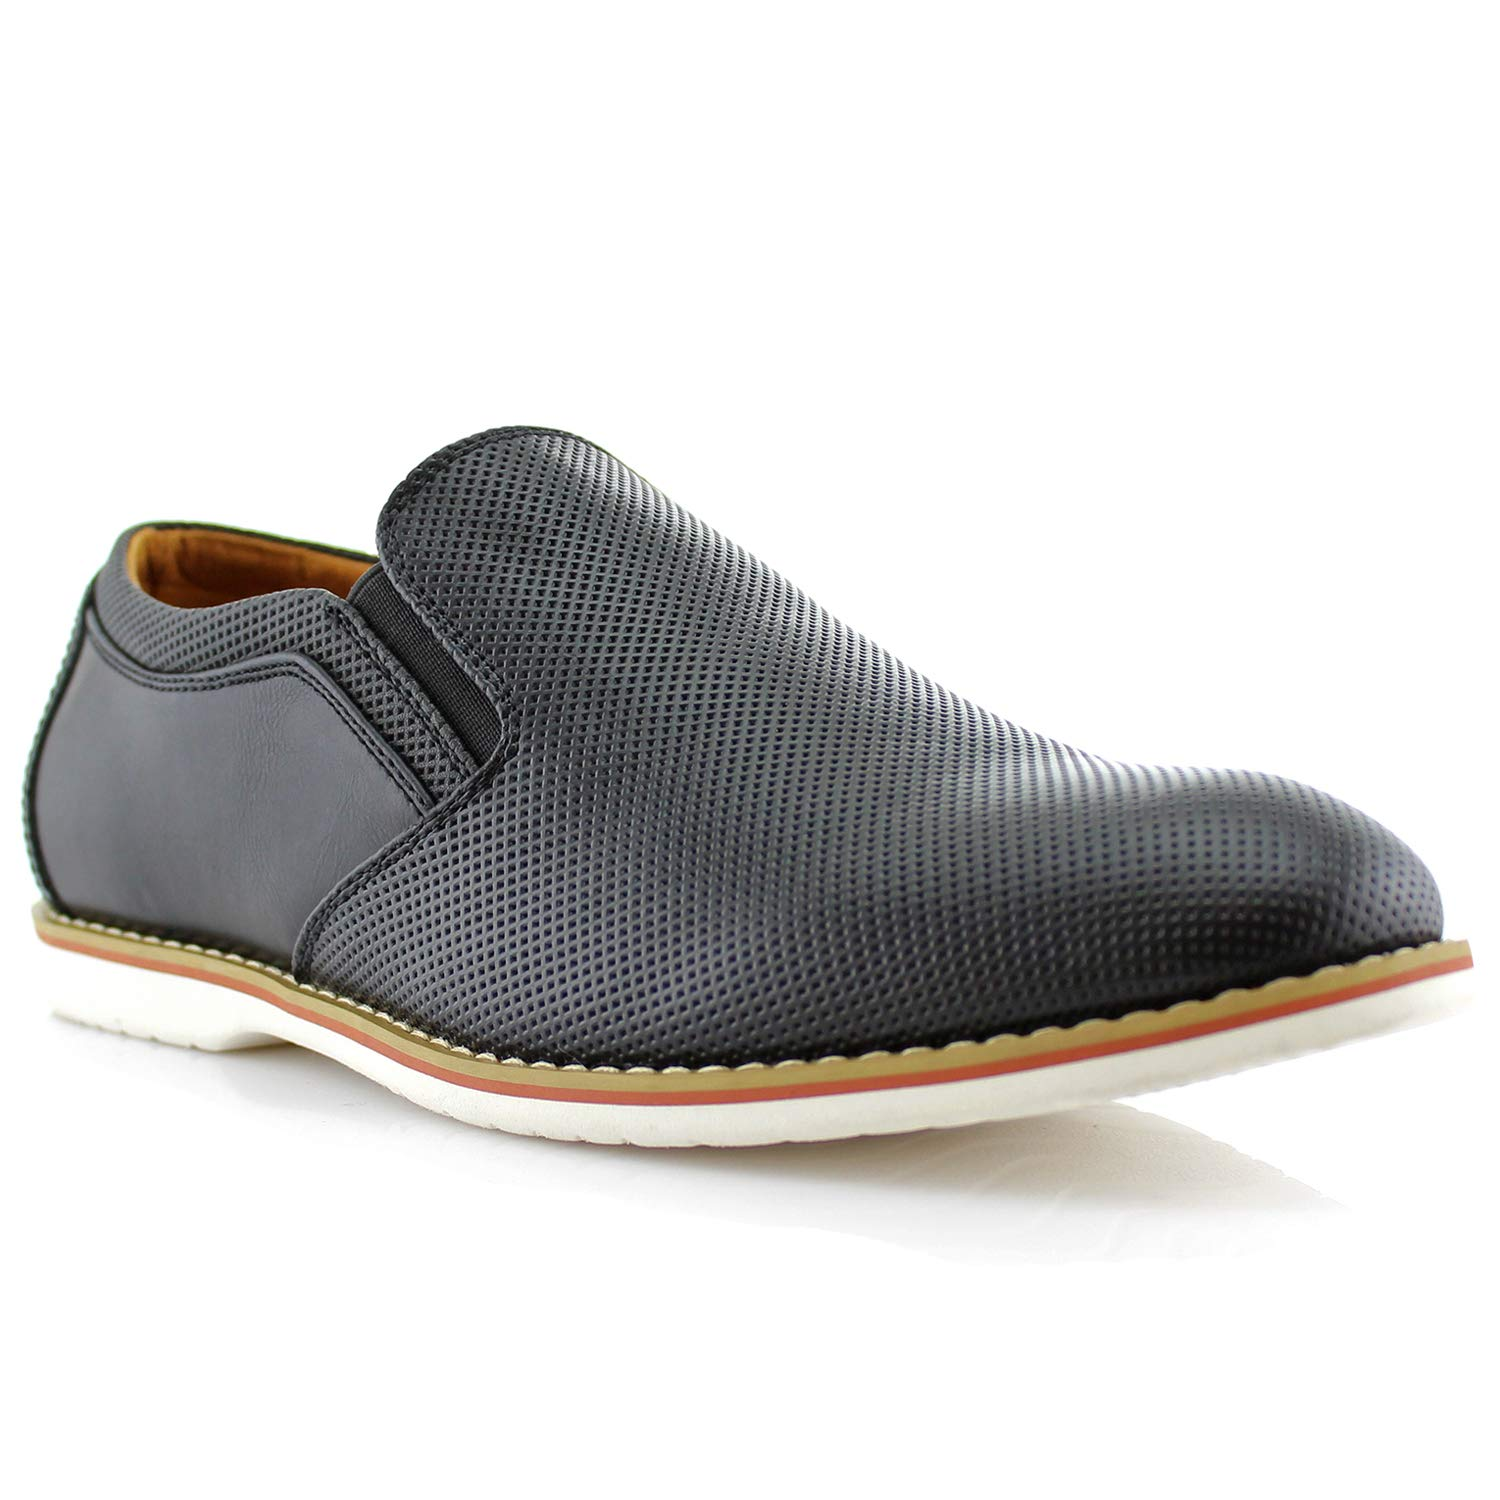 5d4cda5a3a6 Amazon.com | Ferro Aldo Elite MFA19613 Mens Casual Perforated Derby Slip on  Loafer Shoes | Loafers & Slip-Ons